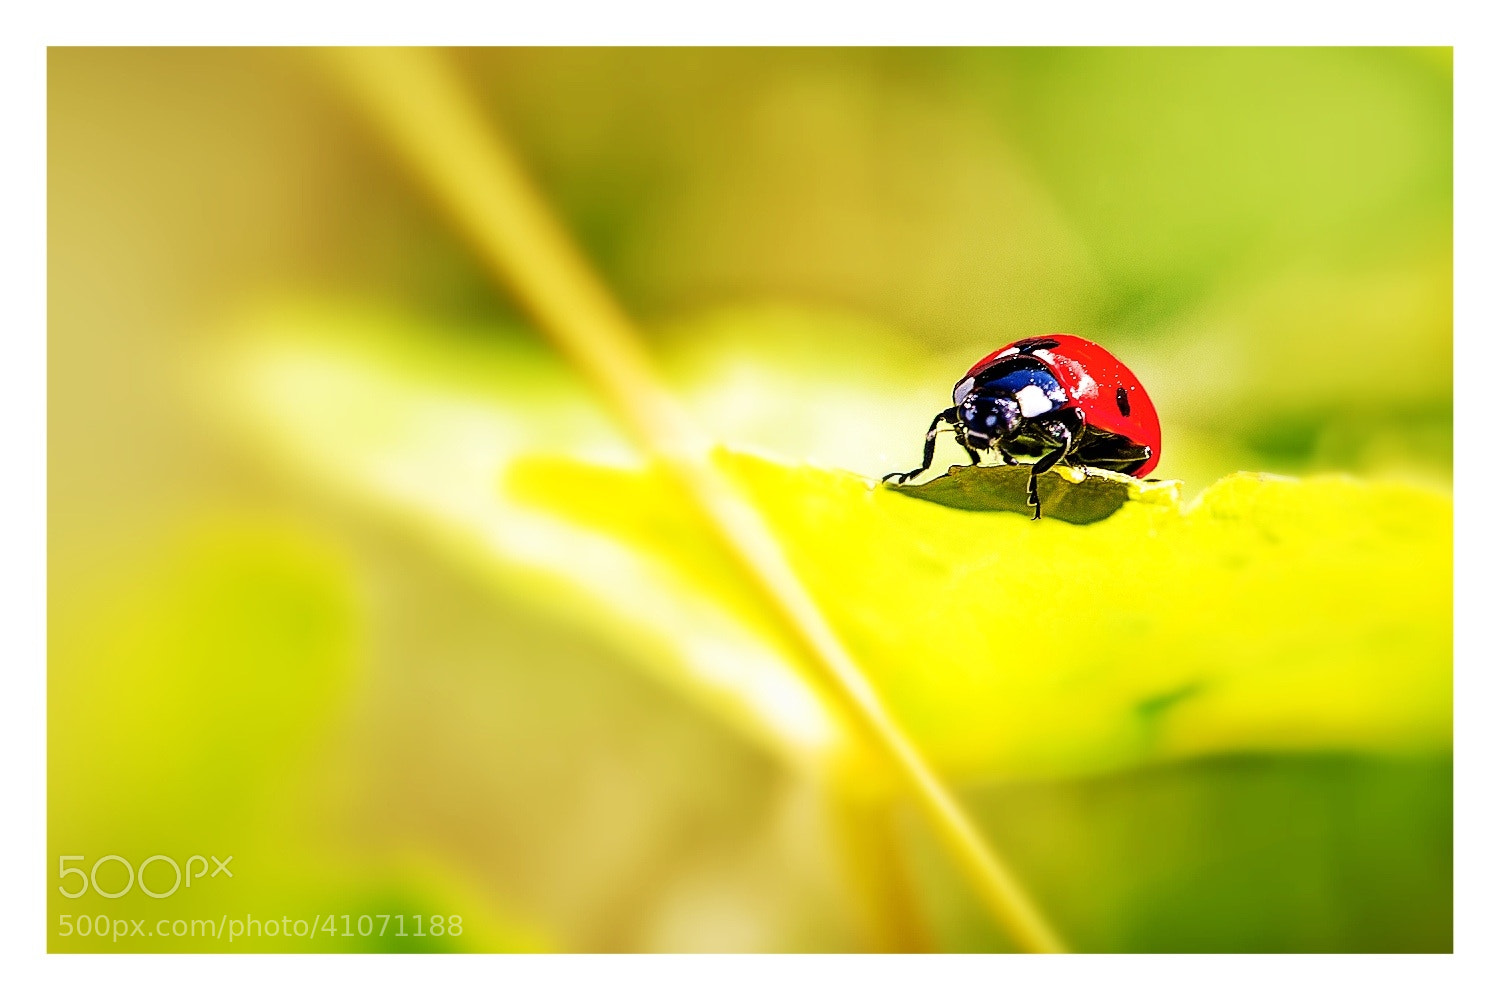 Photograph Ladybug by Johannes Sommer on 500px